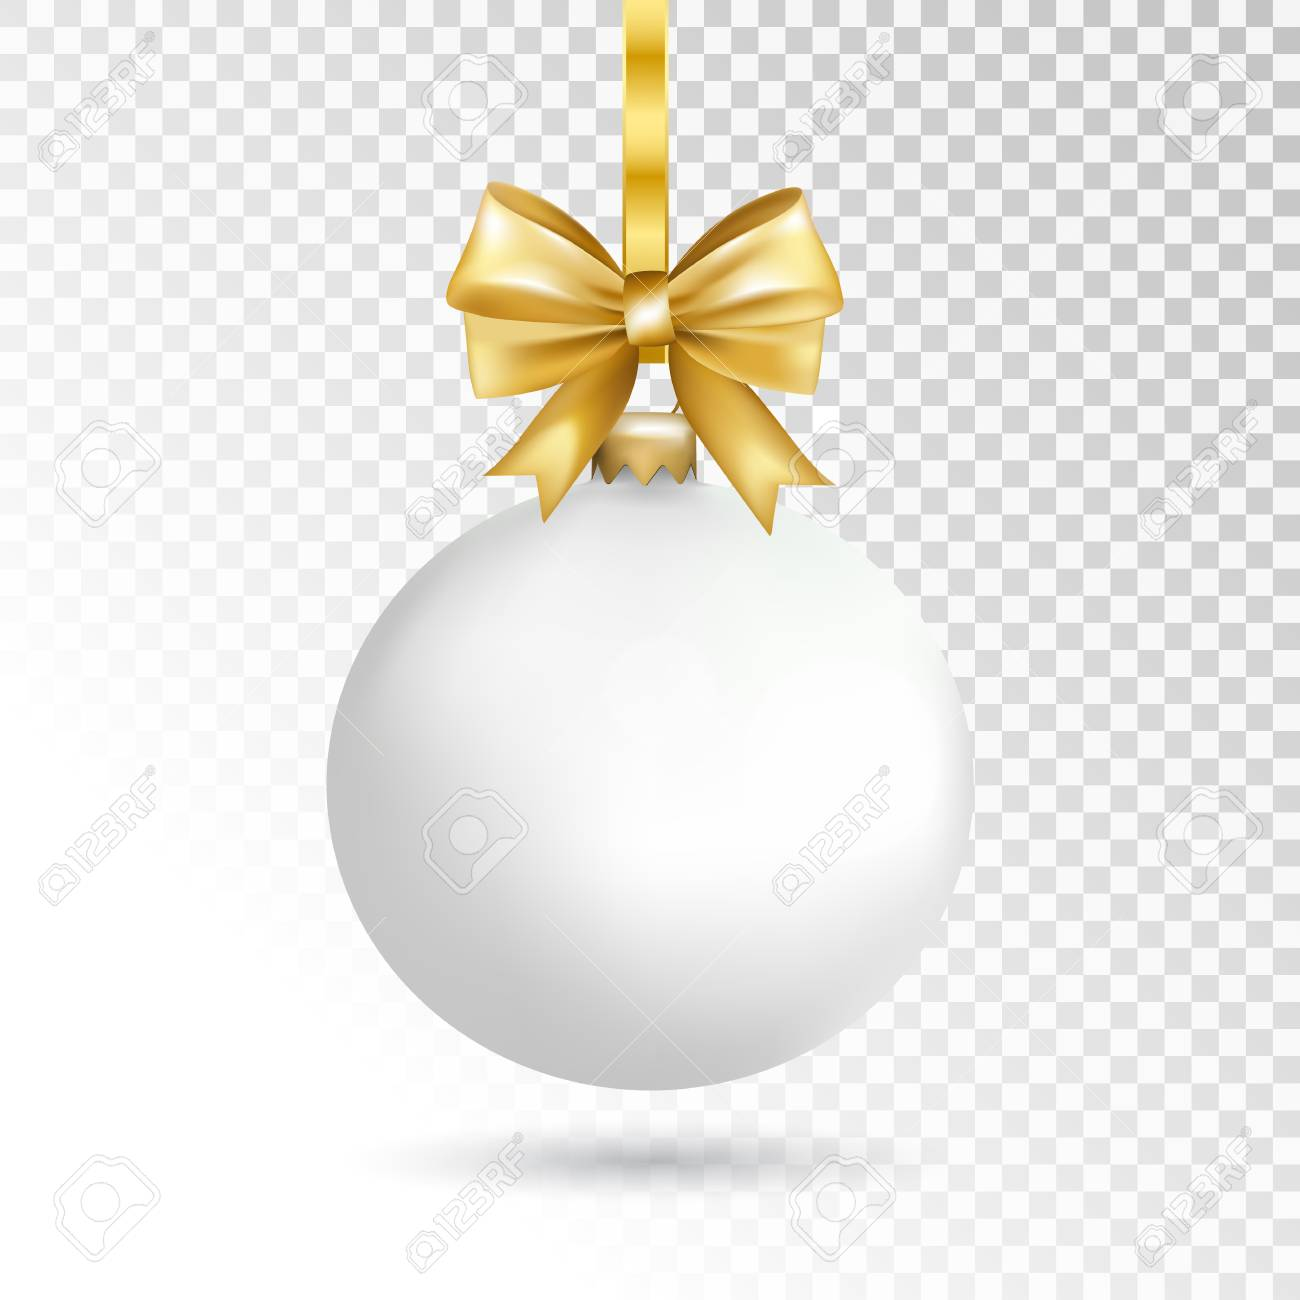 White Christmas Images Free.White Christmas Ball With Bow Isolated On Transparent Background